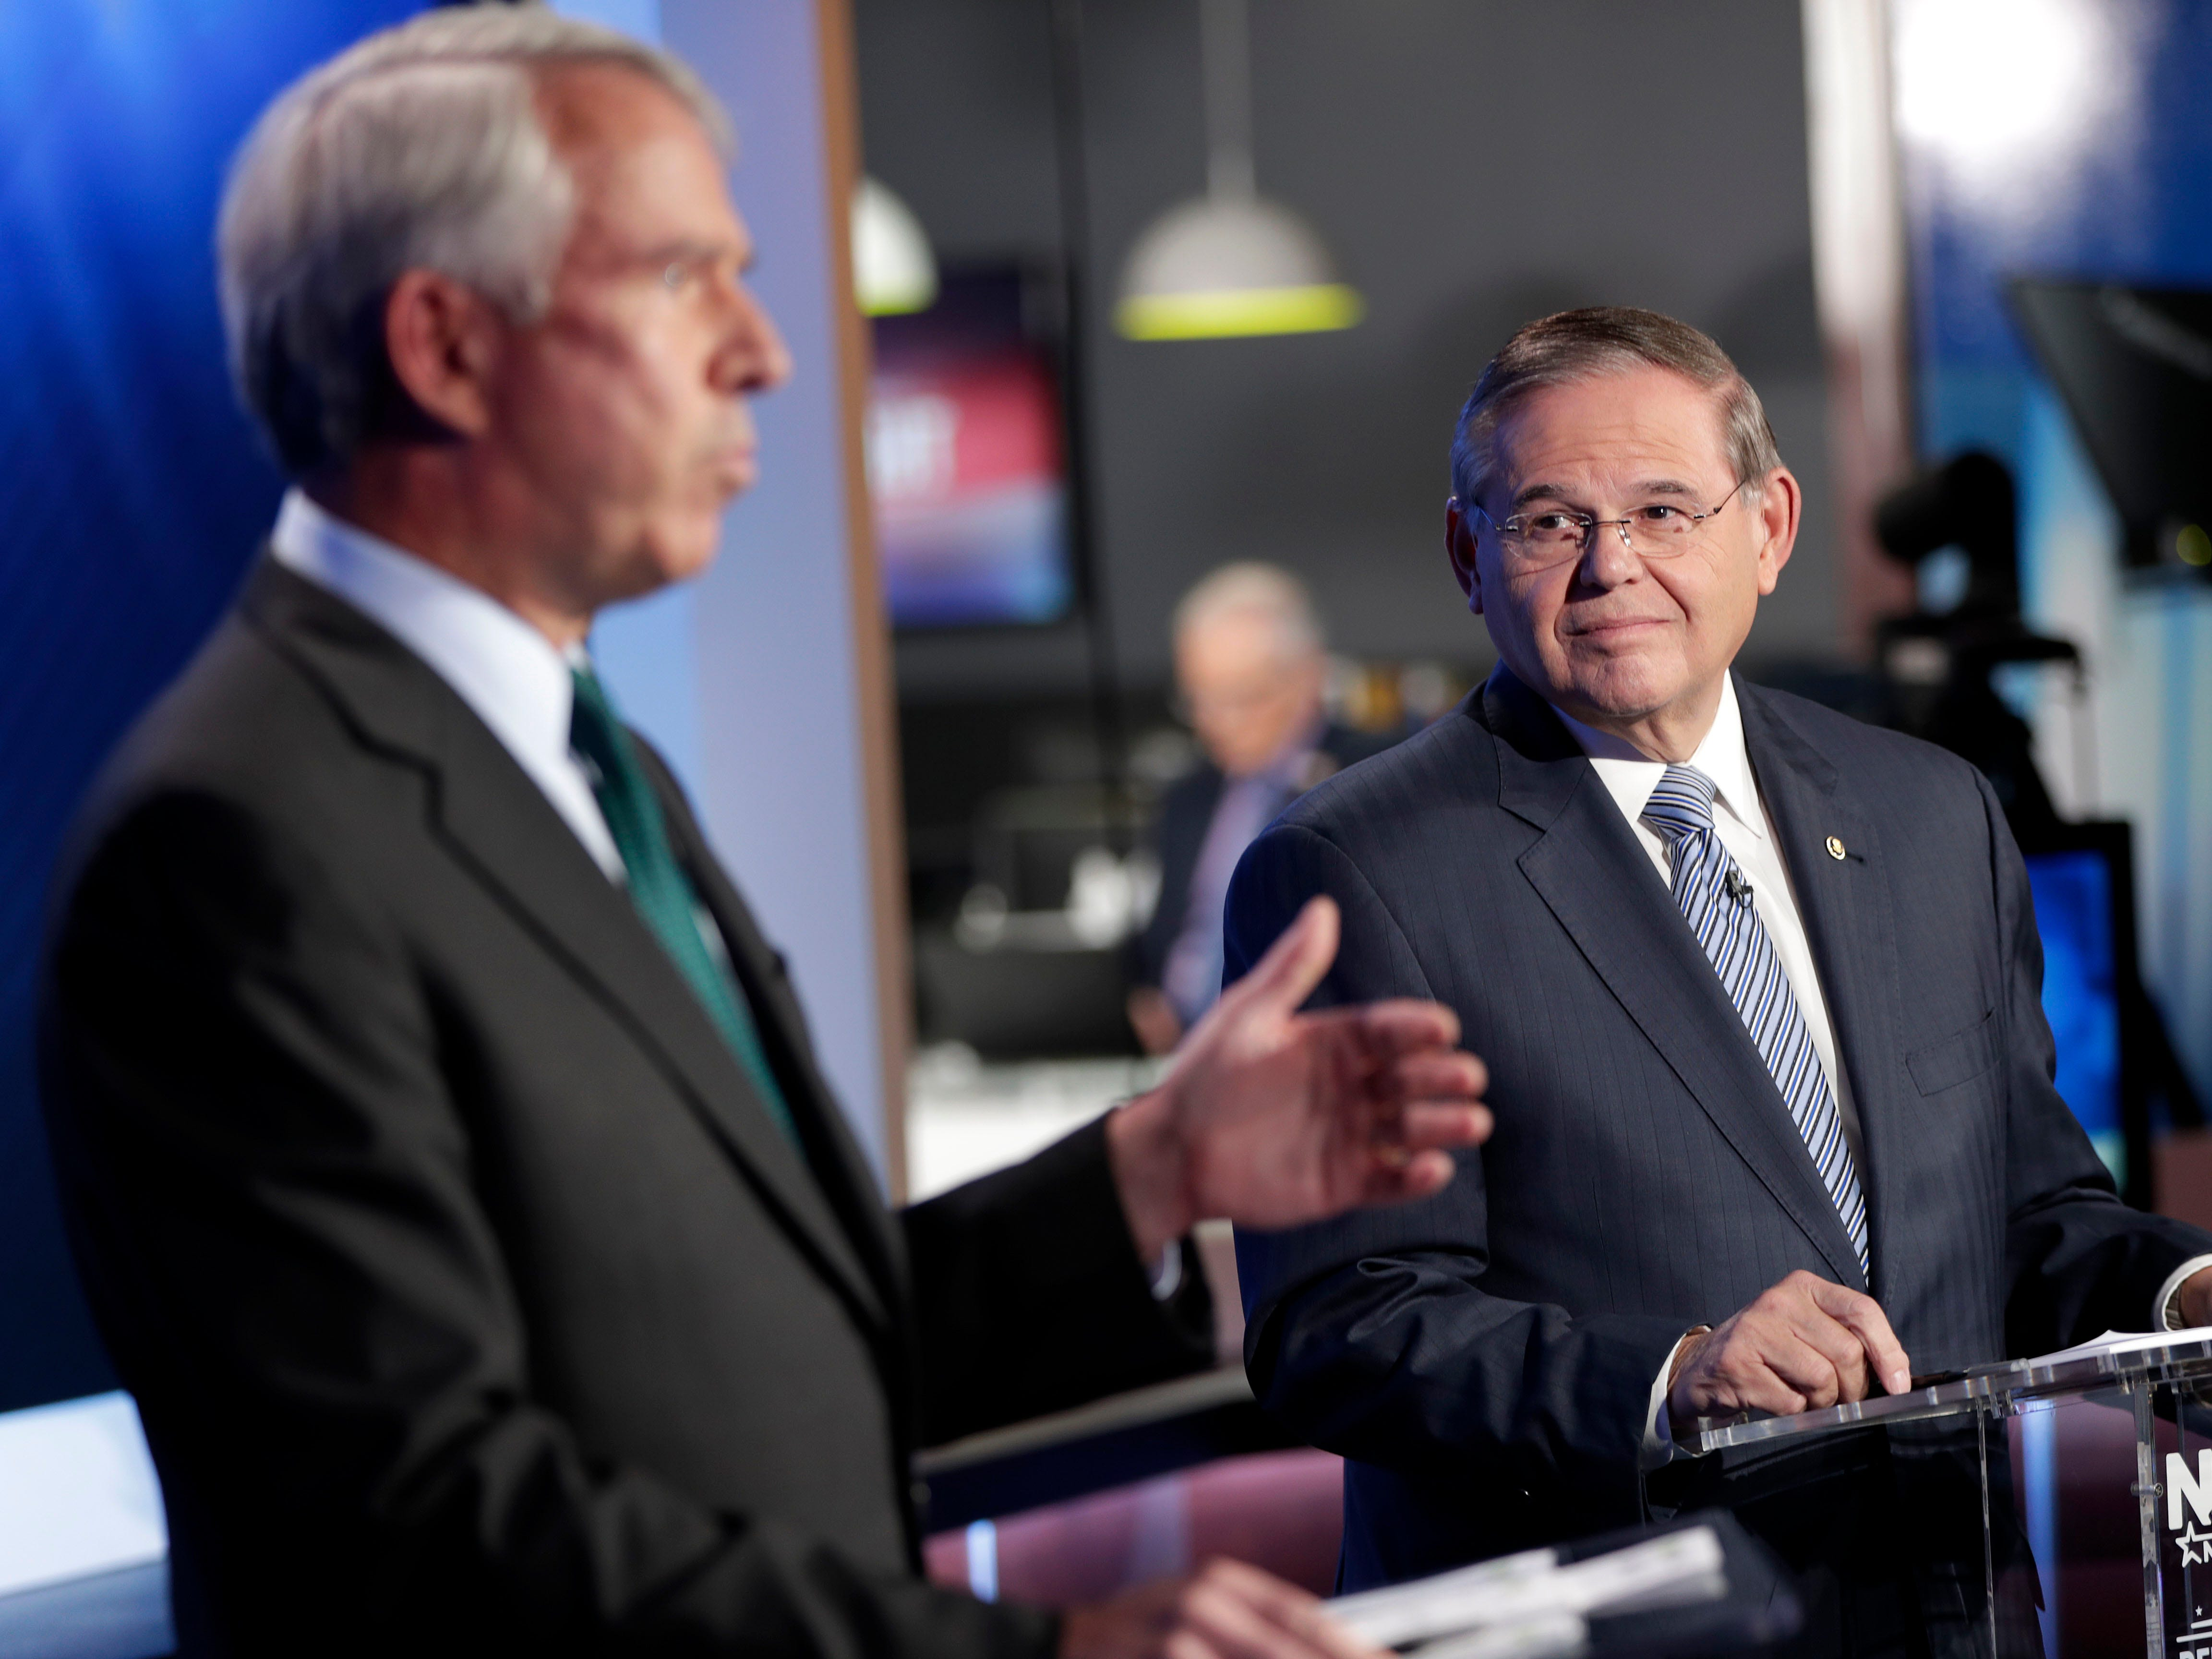 New Jersey Sen. Bob Menendez, right, the Democrat candidate for the U.S. Senate race in New Jersey, looks on as Bob Hugin, the Republican candidate, answers a question during a debate, Wednesday, Oct. 24, 2018, in Newark, N.J.